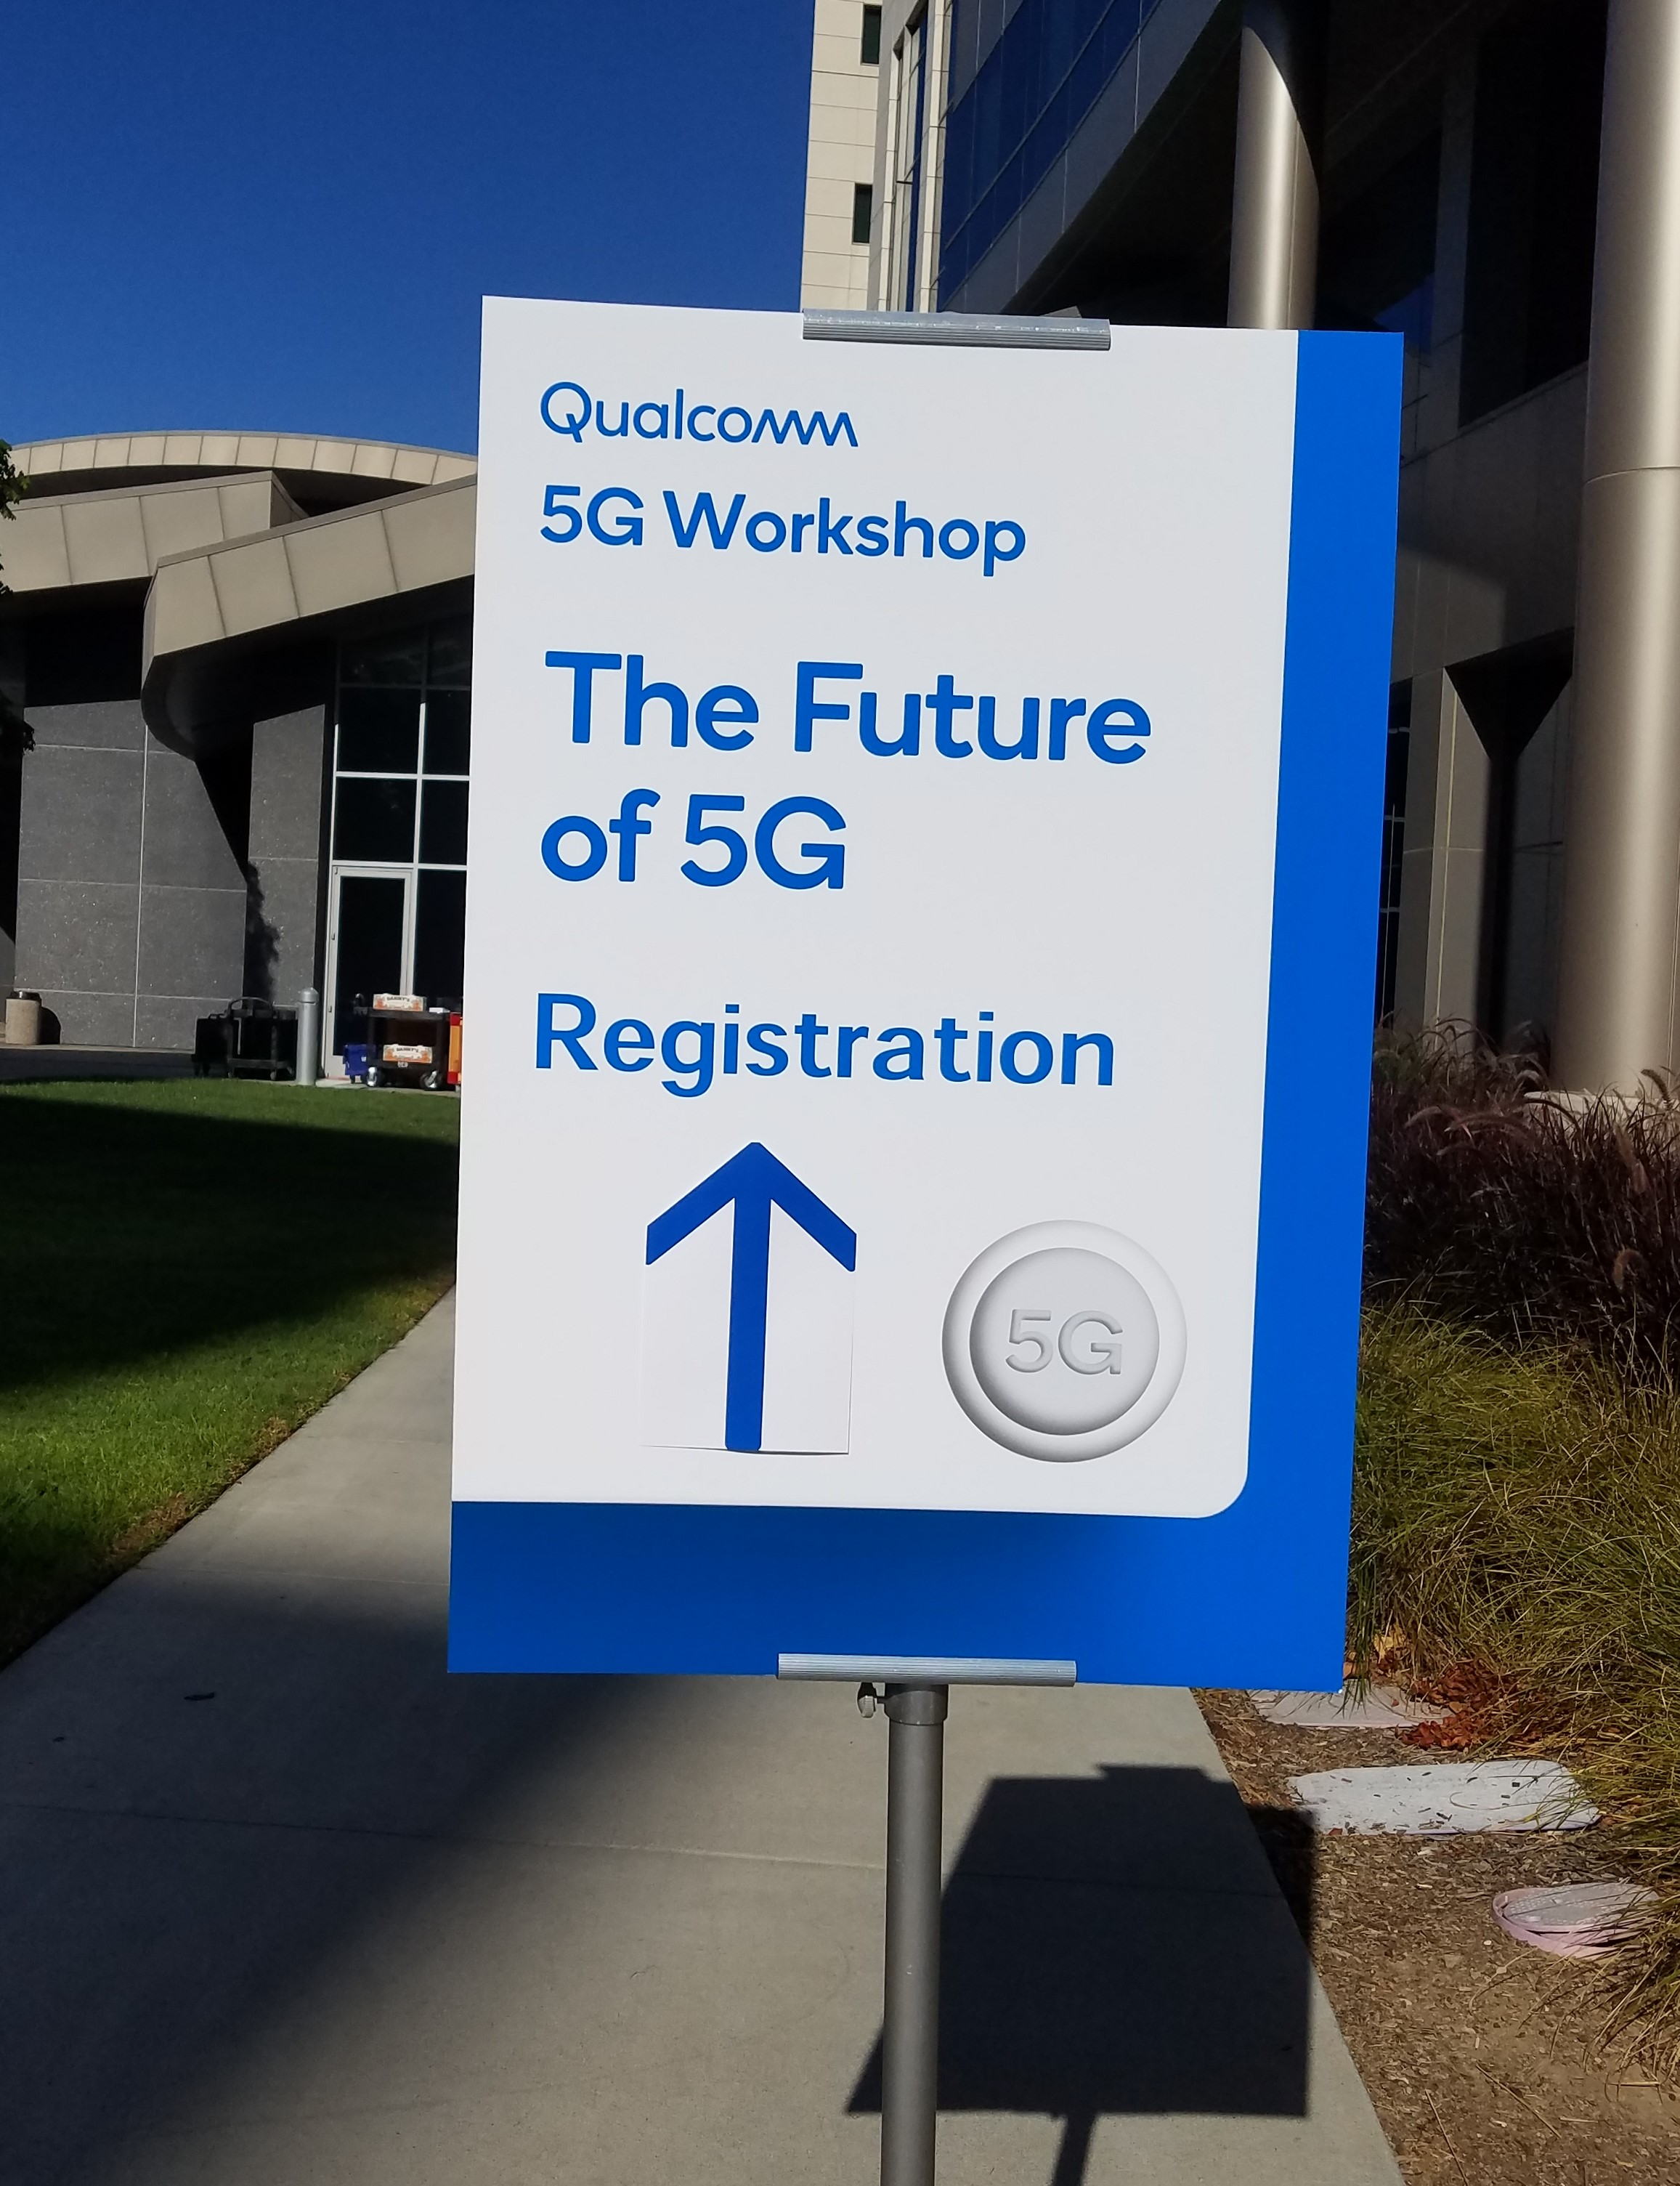 The Future of 5G - Qualcomm